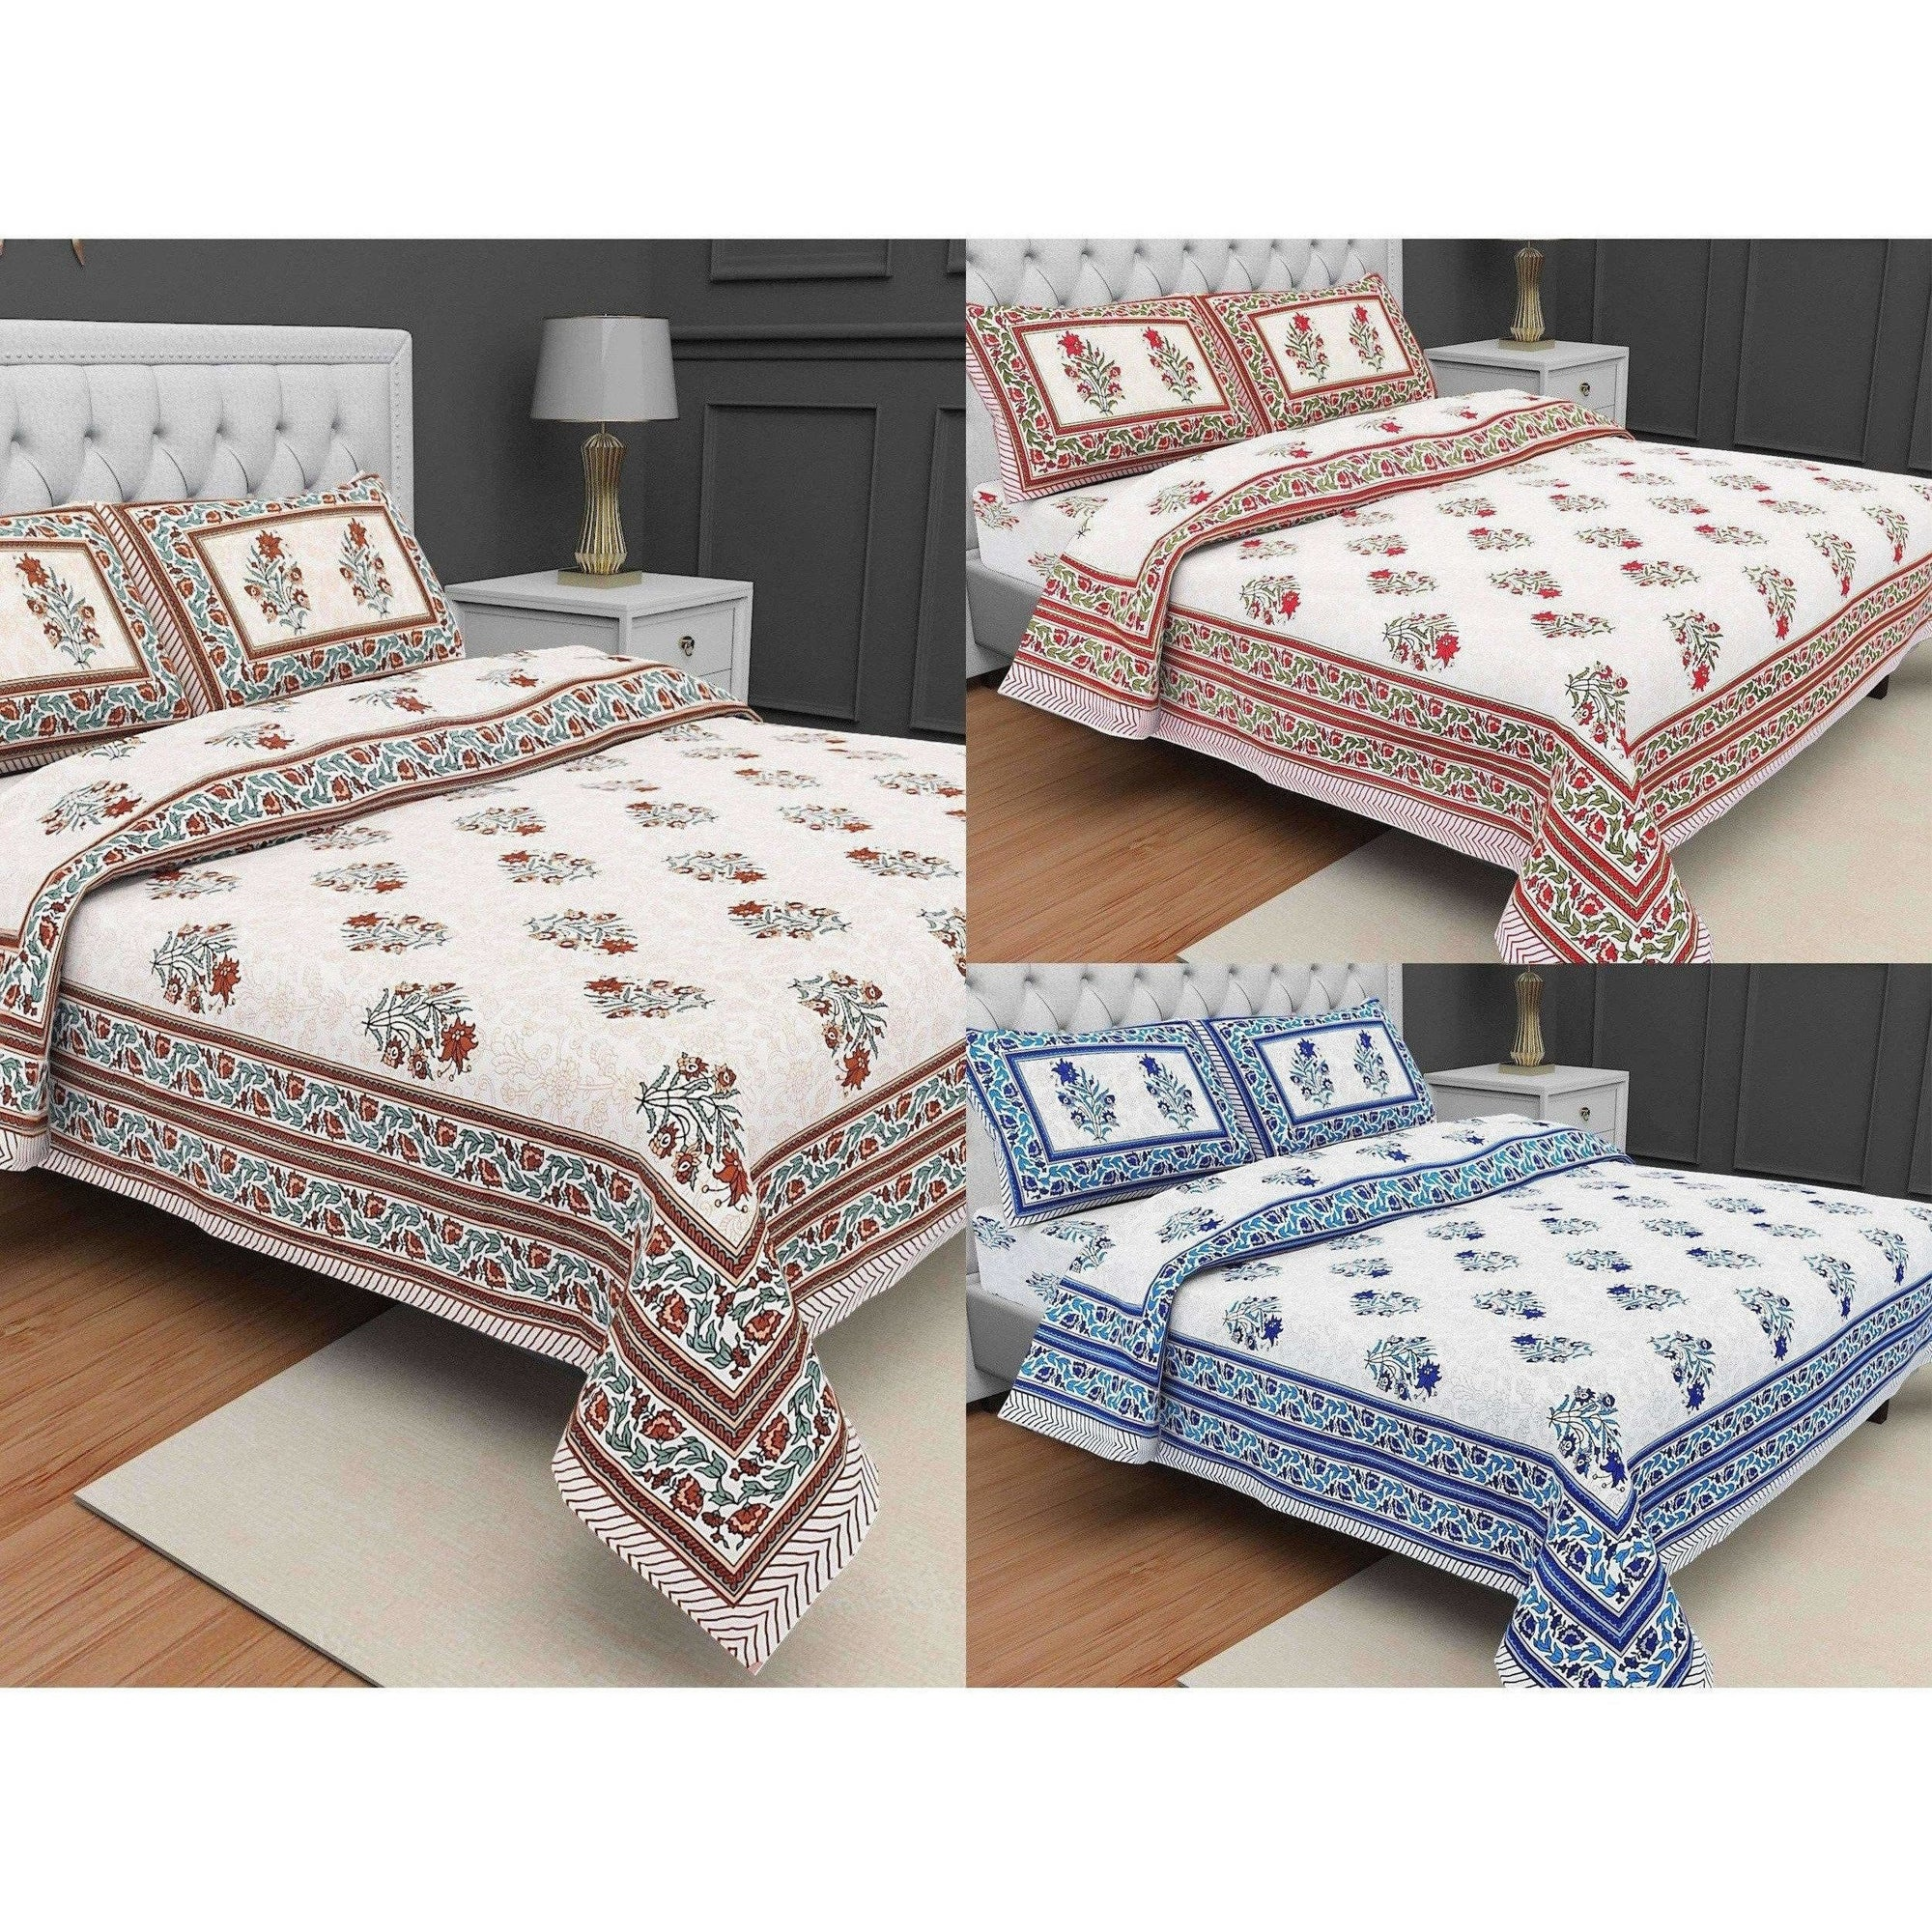 Jaipuri Hand Printed Floral 144TC Cotton DoubleQueen Bedsheet with 2 Pillow Covers